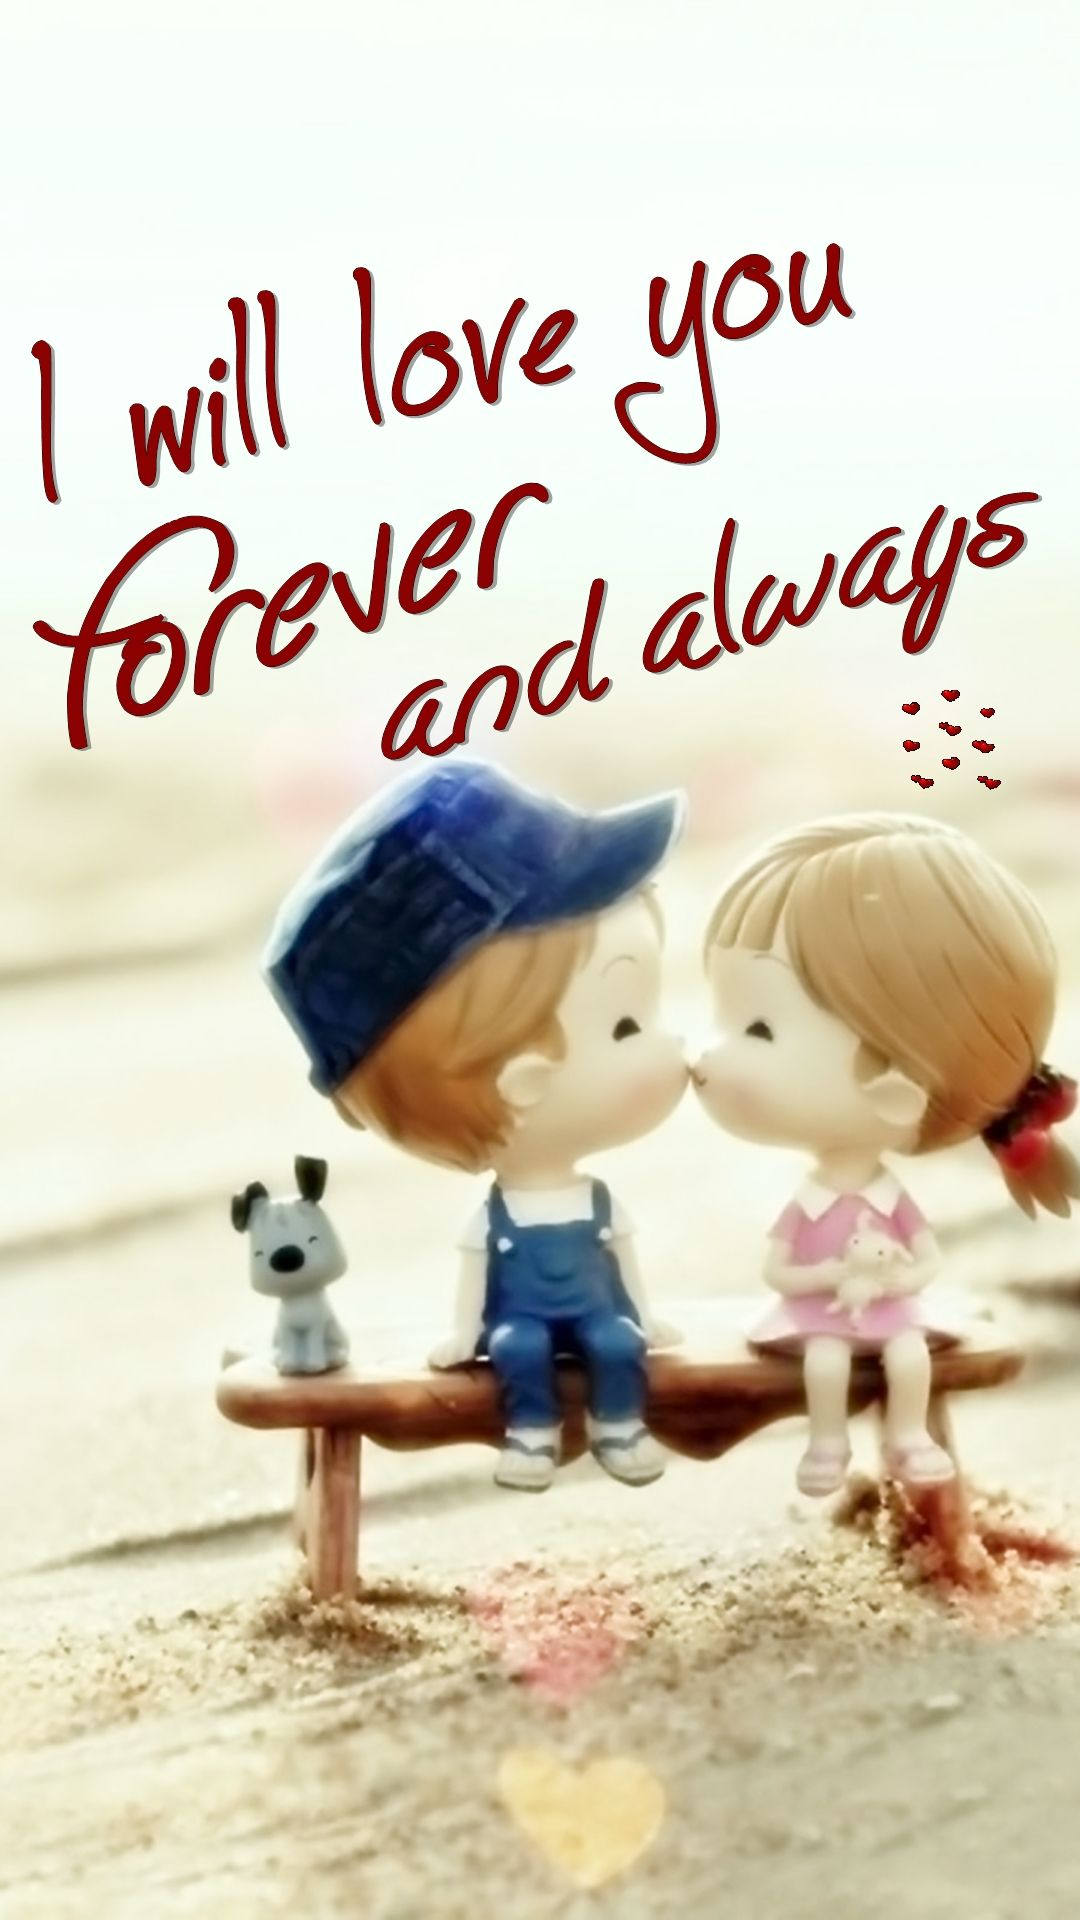 Wallpaper Love U Forever : Tap image for more love wallpapers! Love you forever - @mobile9 iPhone 6 wallpapers iPhone 7 ...